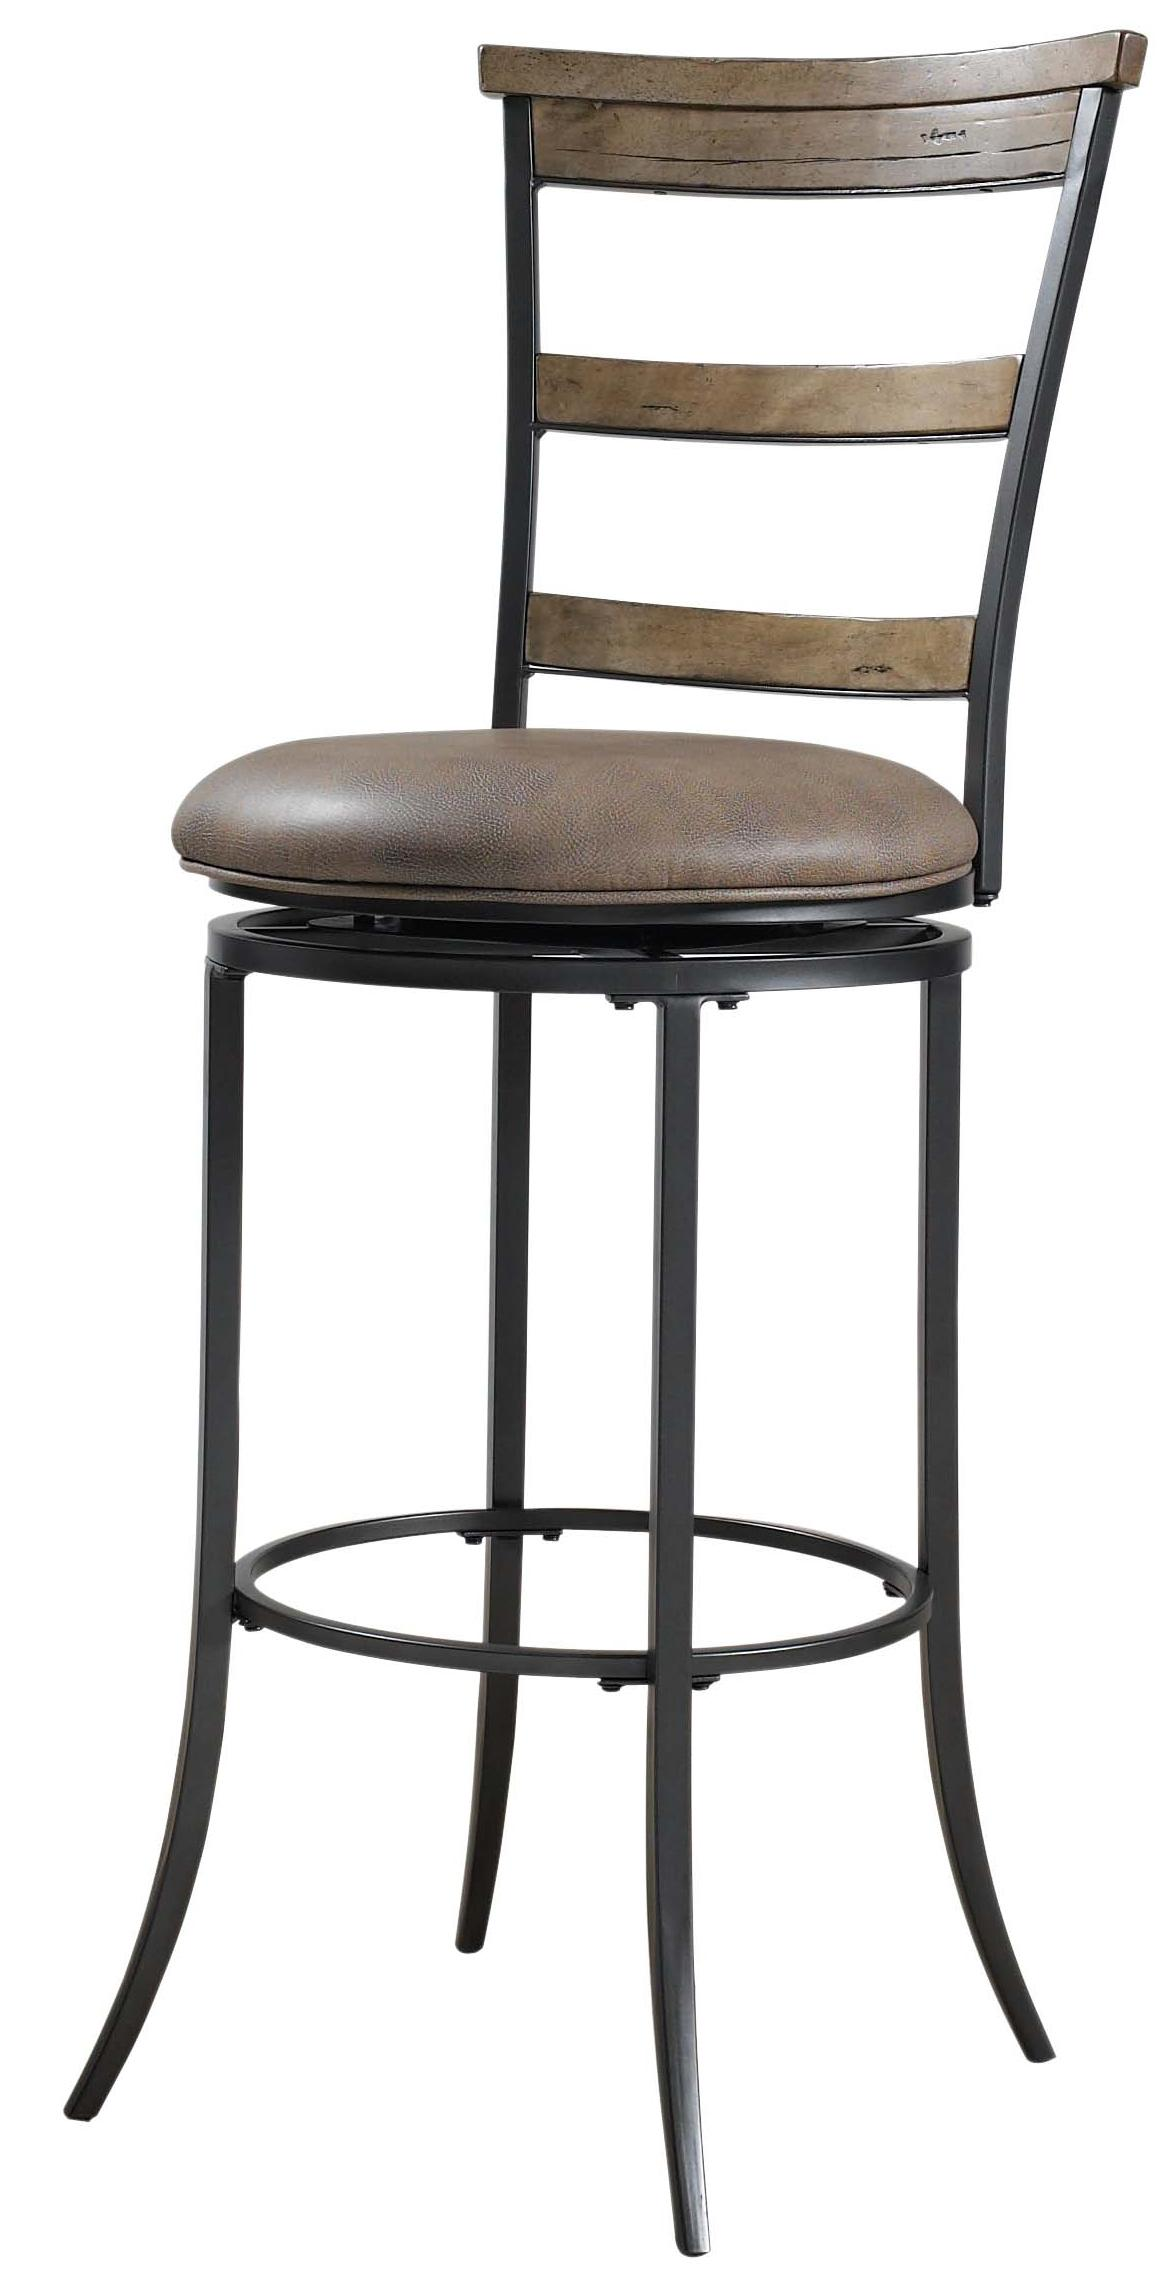 Hillsdale Metal Stools 4670 832 Charleston Swivel Ladder Back Bar